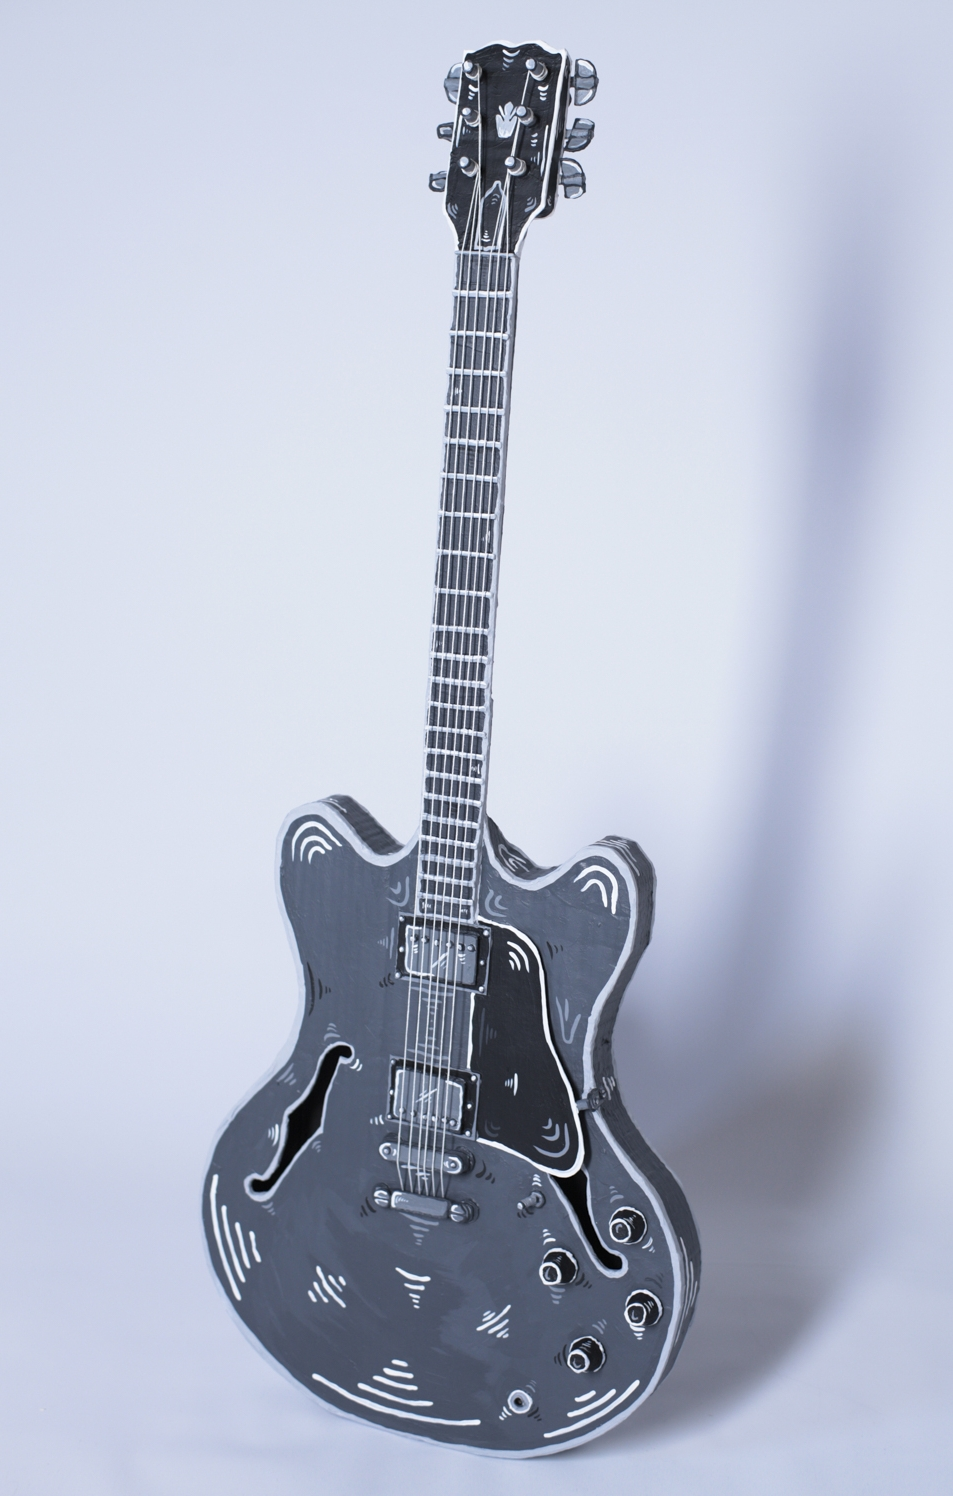 Dosshaus_ Electric Guitar (ES-335) Right View.jpg